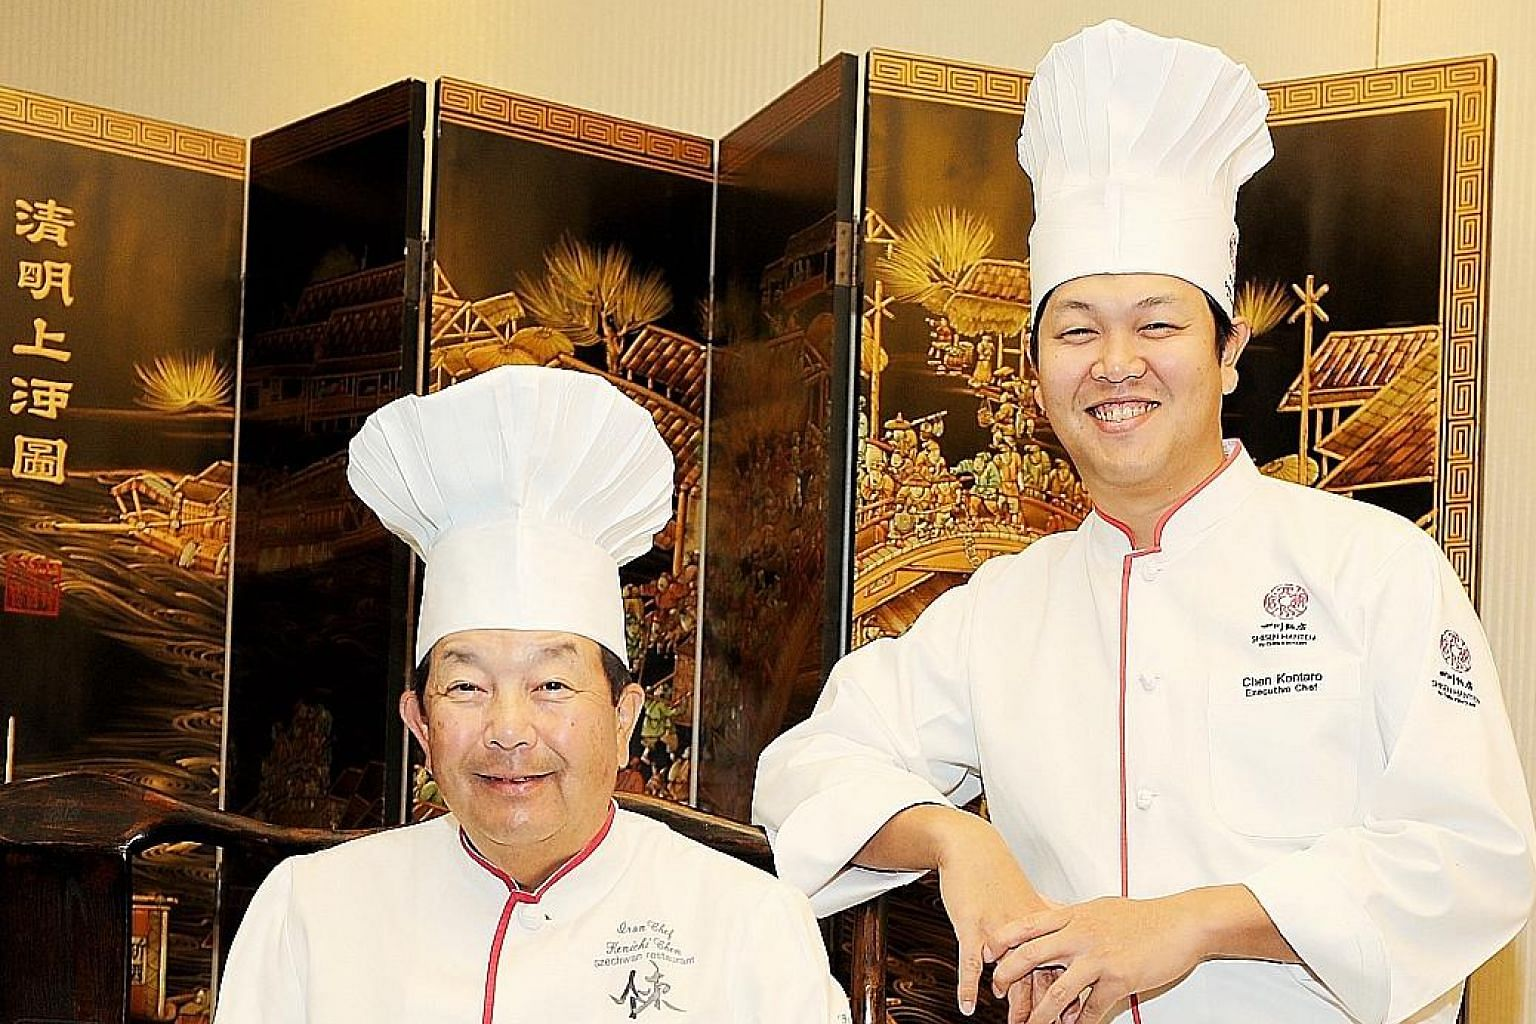 Chef Chen Kenichi (left) now leaves the running of the Shisen Hanten restaurants to his son, chef Chen Kentaro (right).